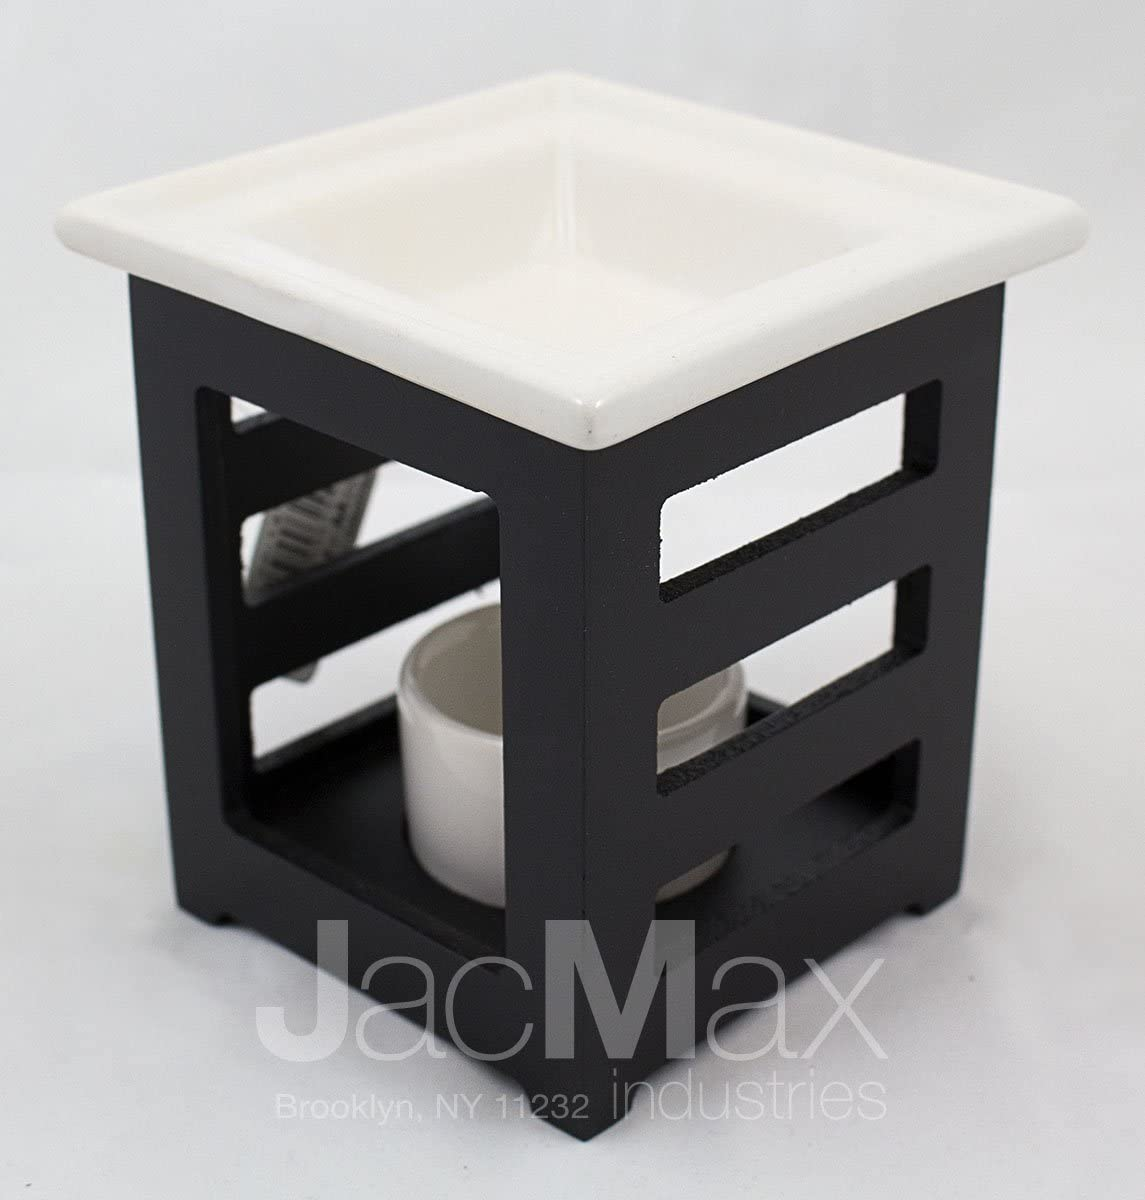 Expressive Scent Ceramic Burner for Very popular! Oil Wax Dallas Mall Melts and Fragranc -